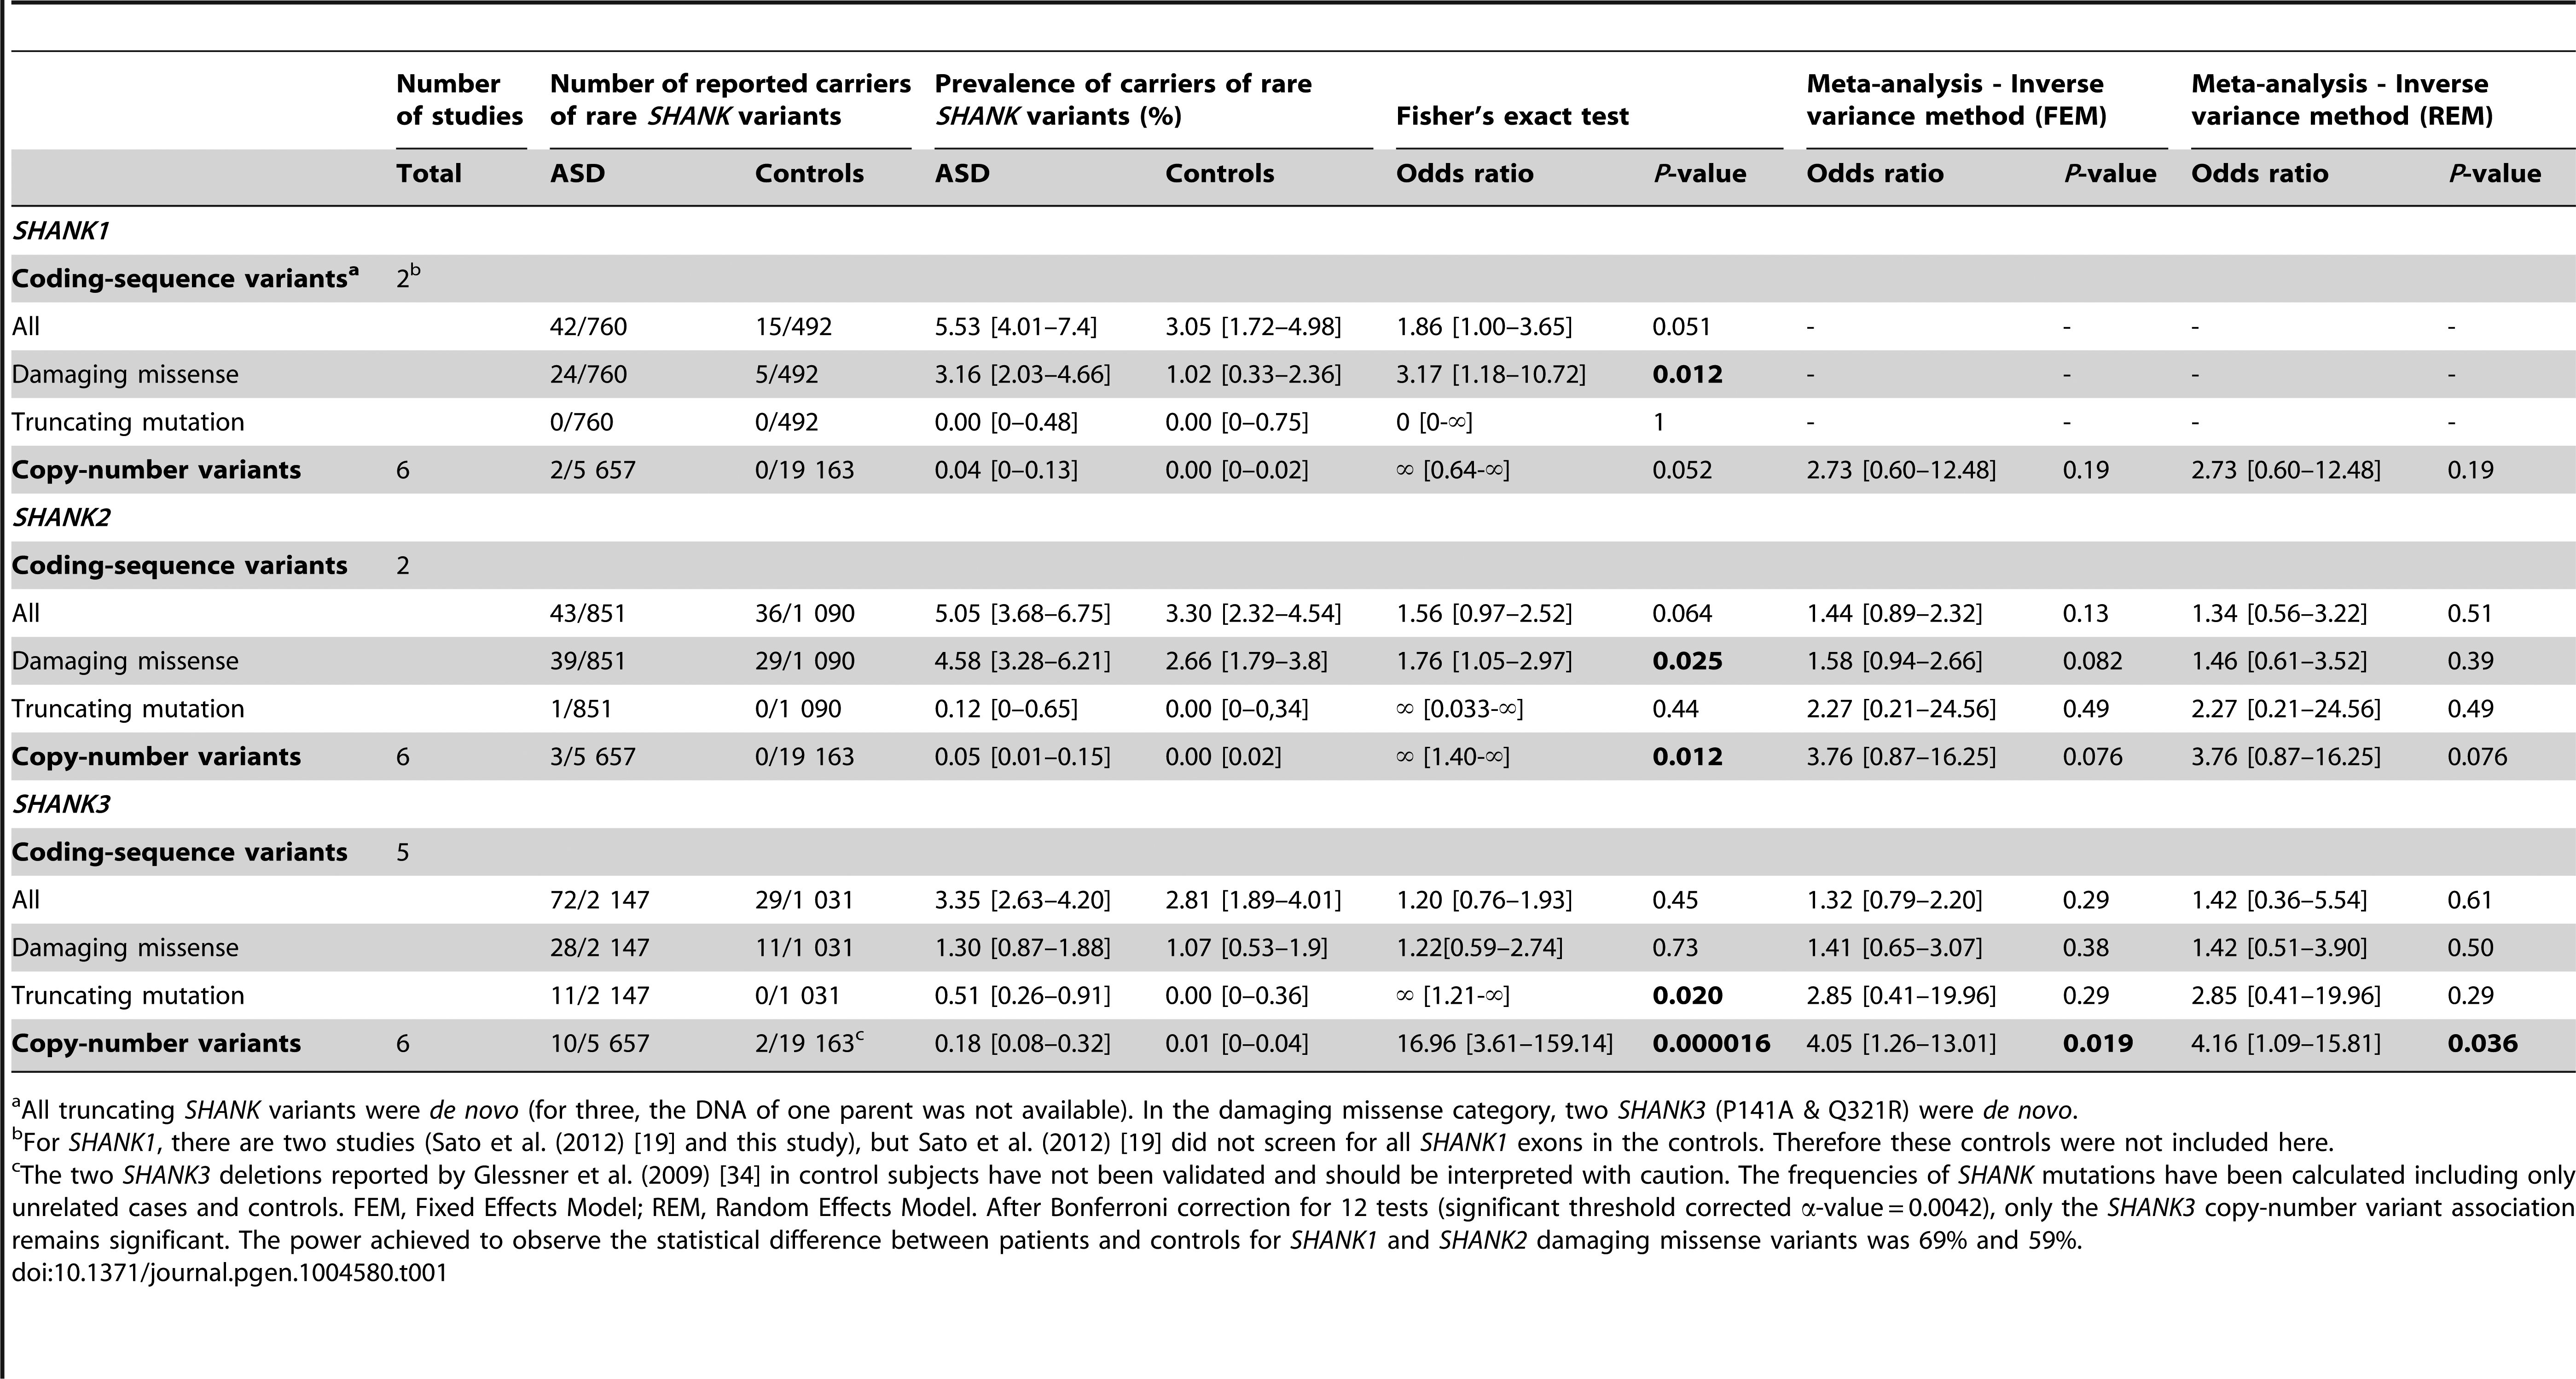 Prevalence of <i>SHANK</i> rare coding-sequence and copy-number variants in patients with ASD and controls.